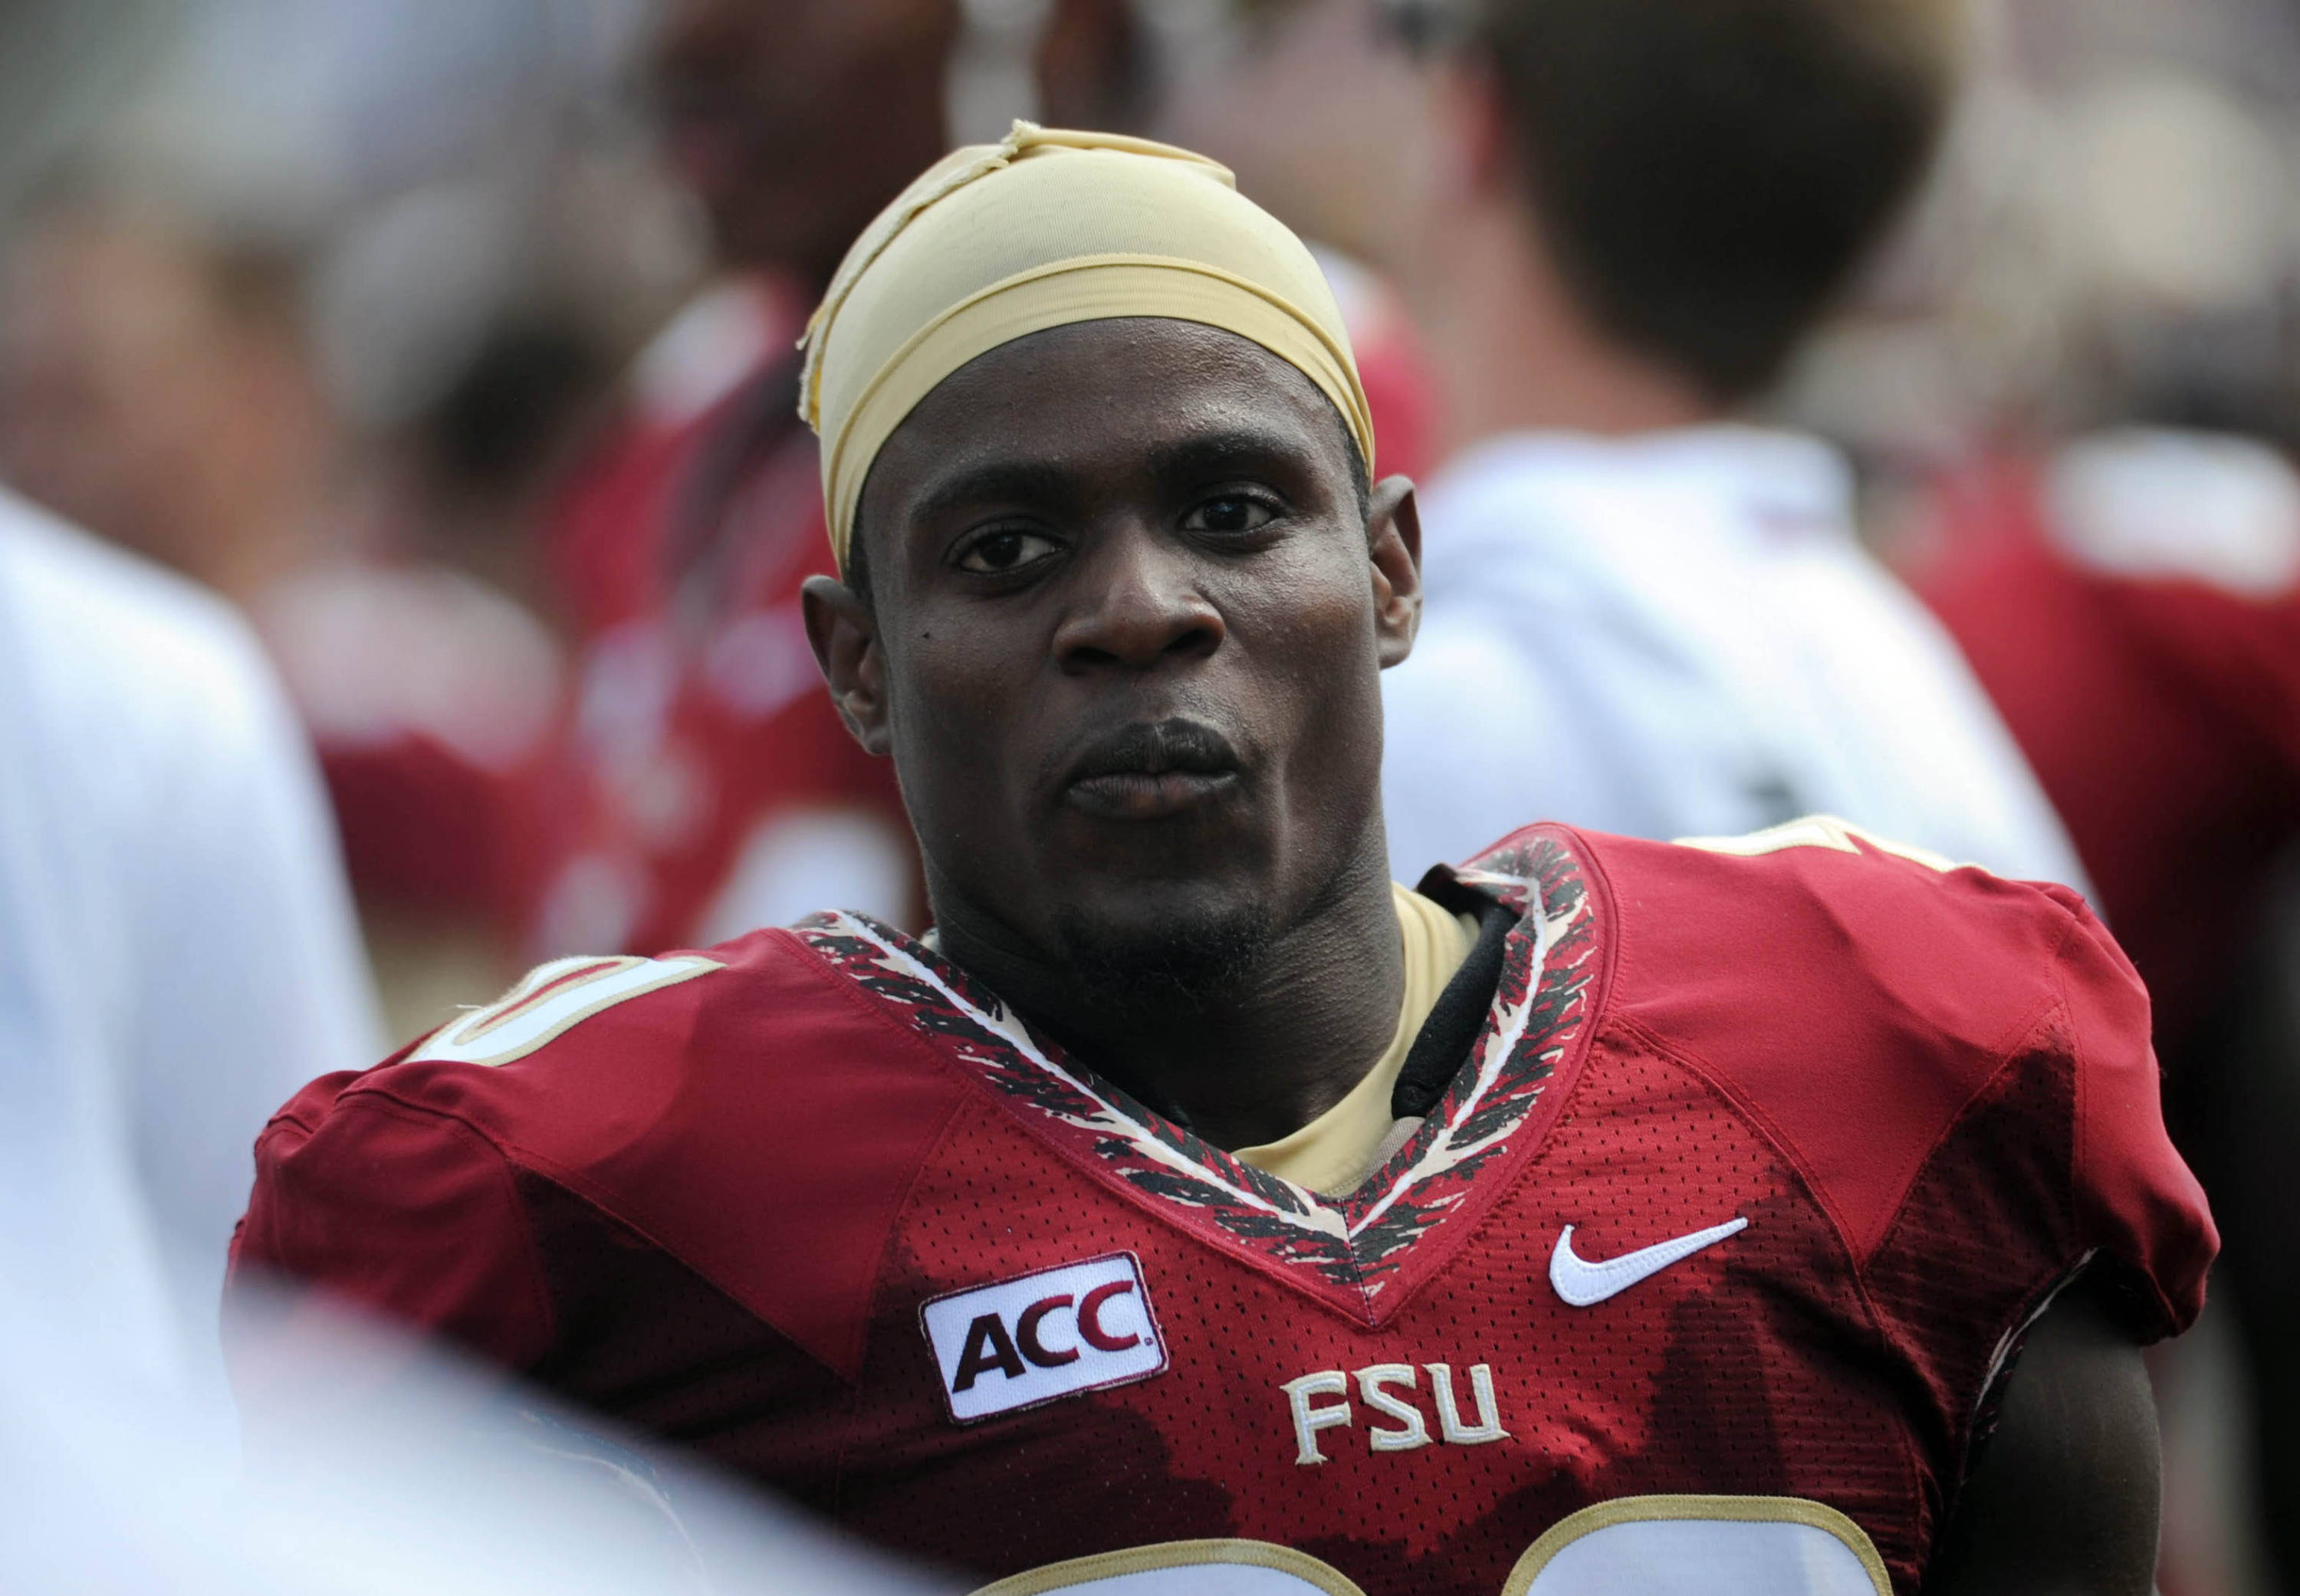 Oct 5, 2013; Tallahassee, FL, USA; Florida State Seminoles defensive back Lamarcus Joyner (20) during the game against the Maryland Terrapins at Doak Campbell Stadium. Mandatory Credit: Melina Vastola-USA TODAY Sports